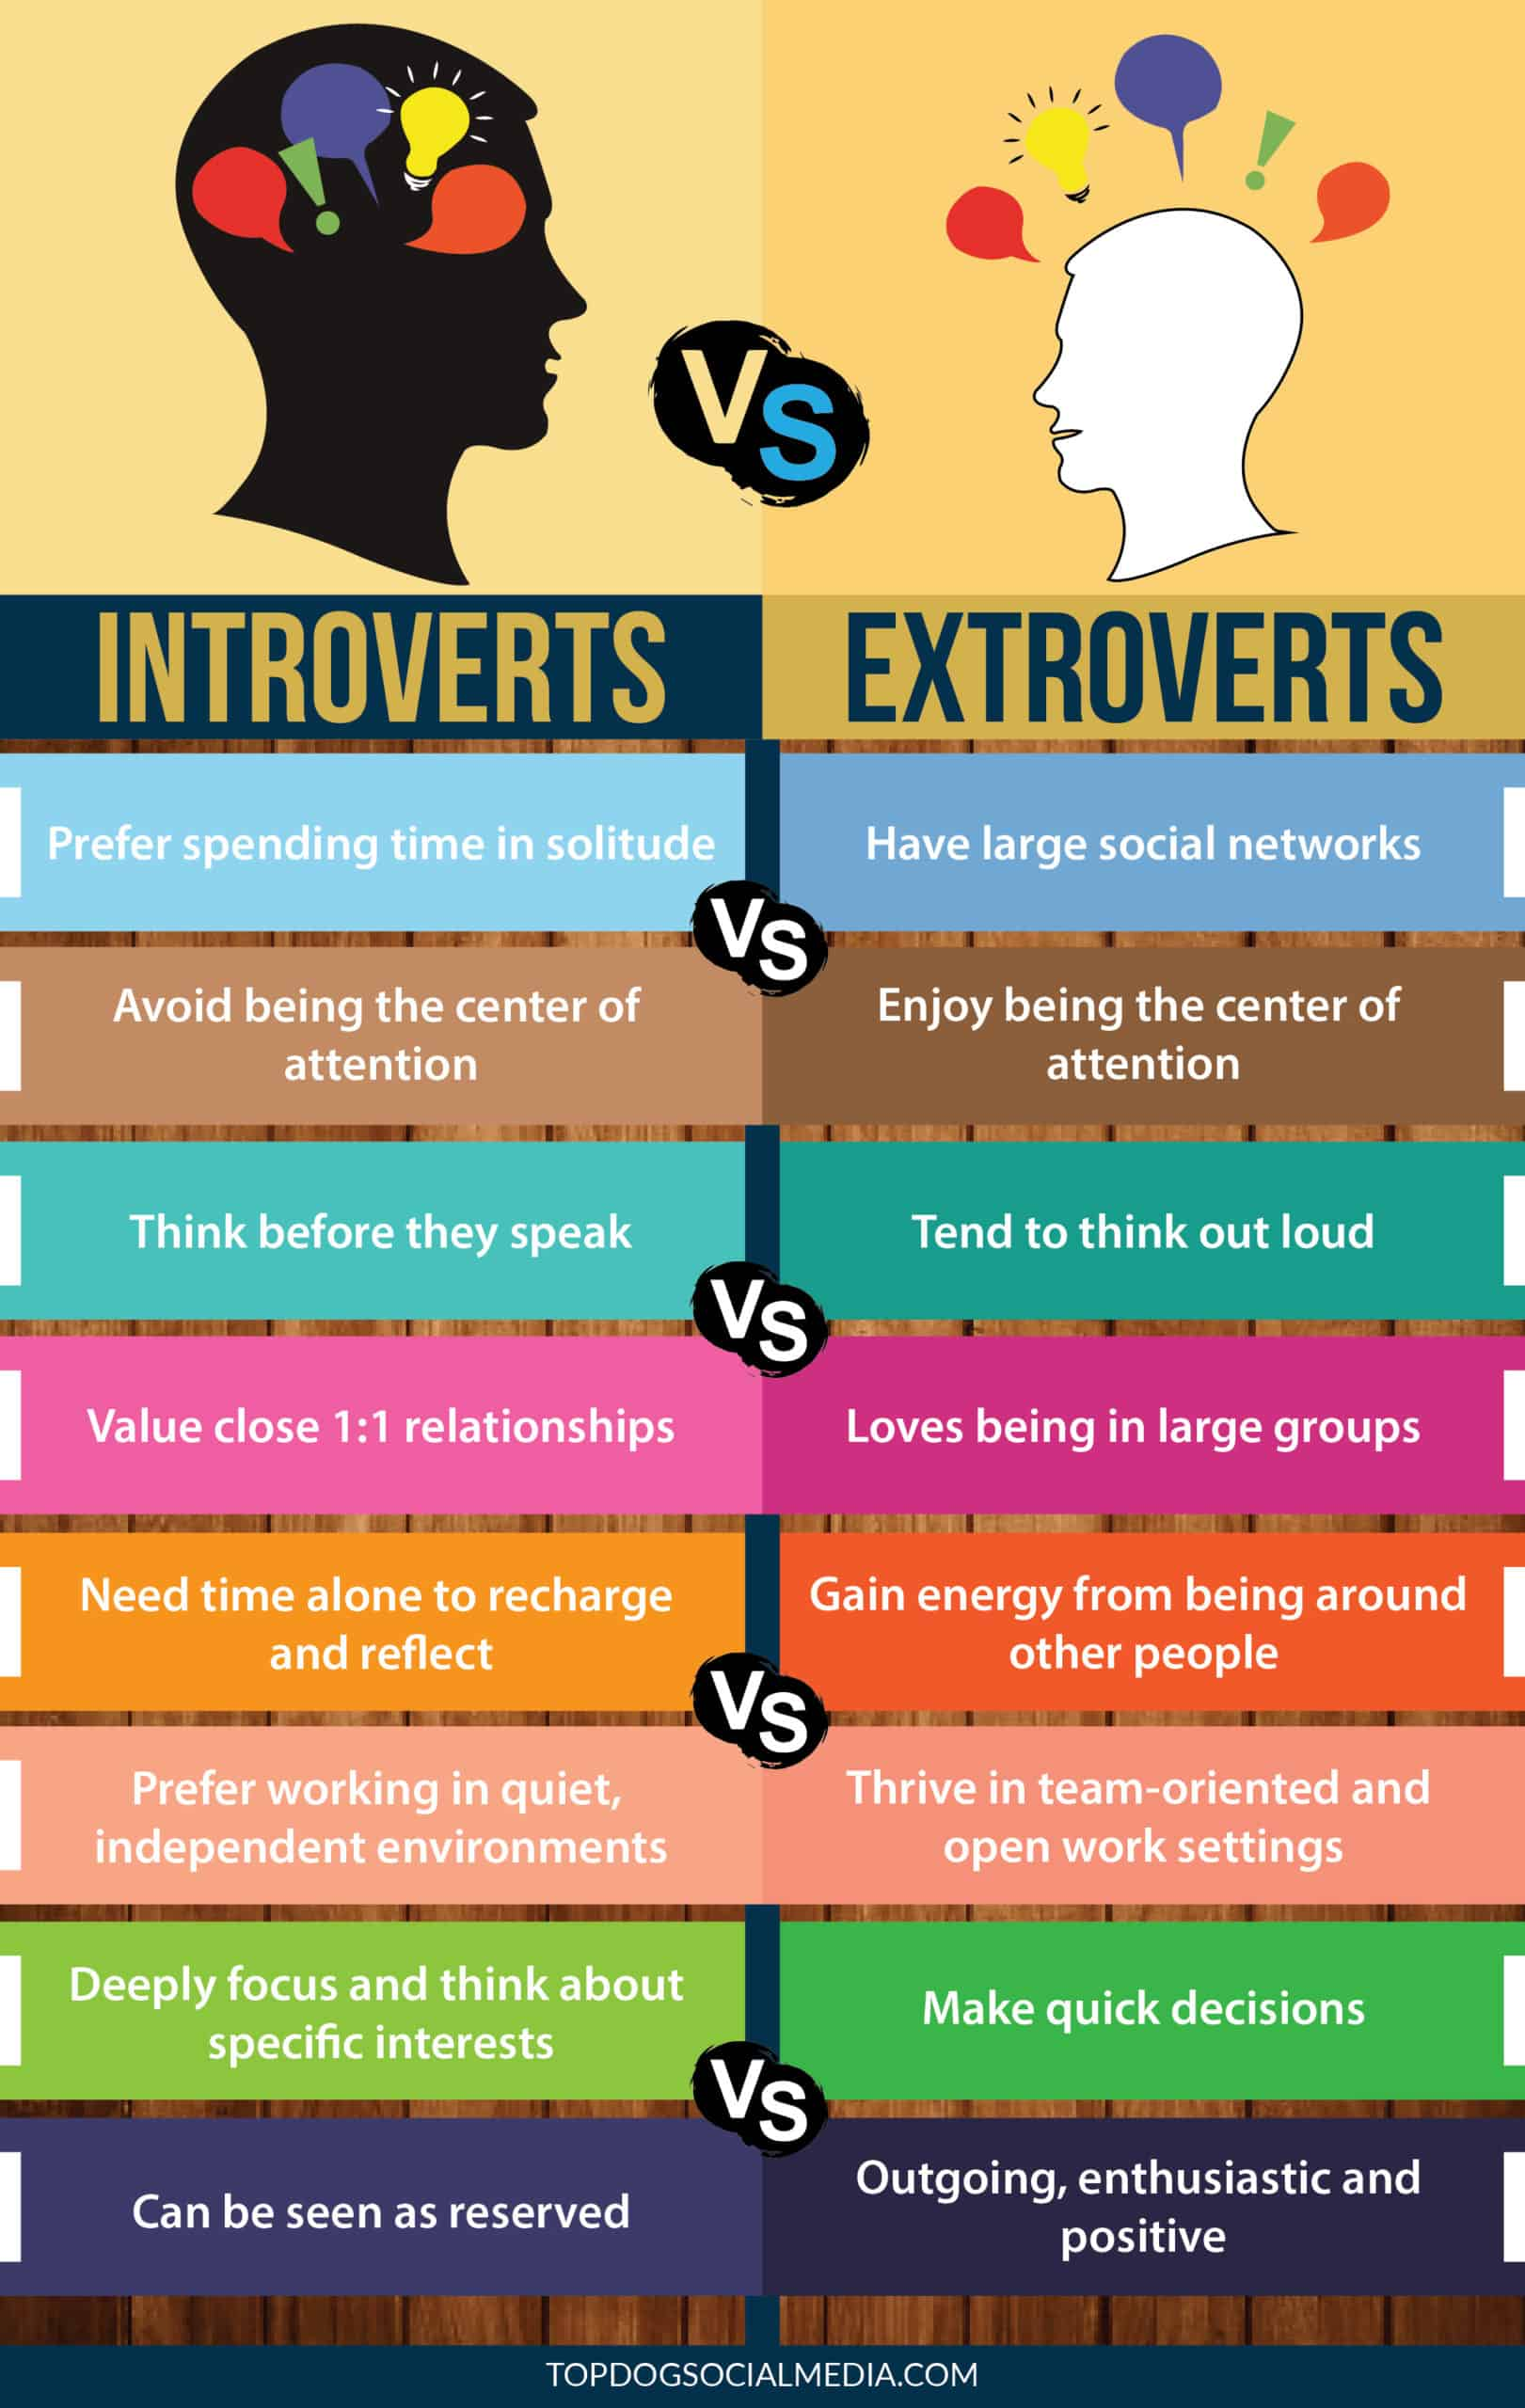 The differences between introverts and extroverts.